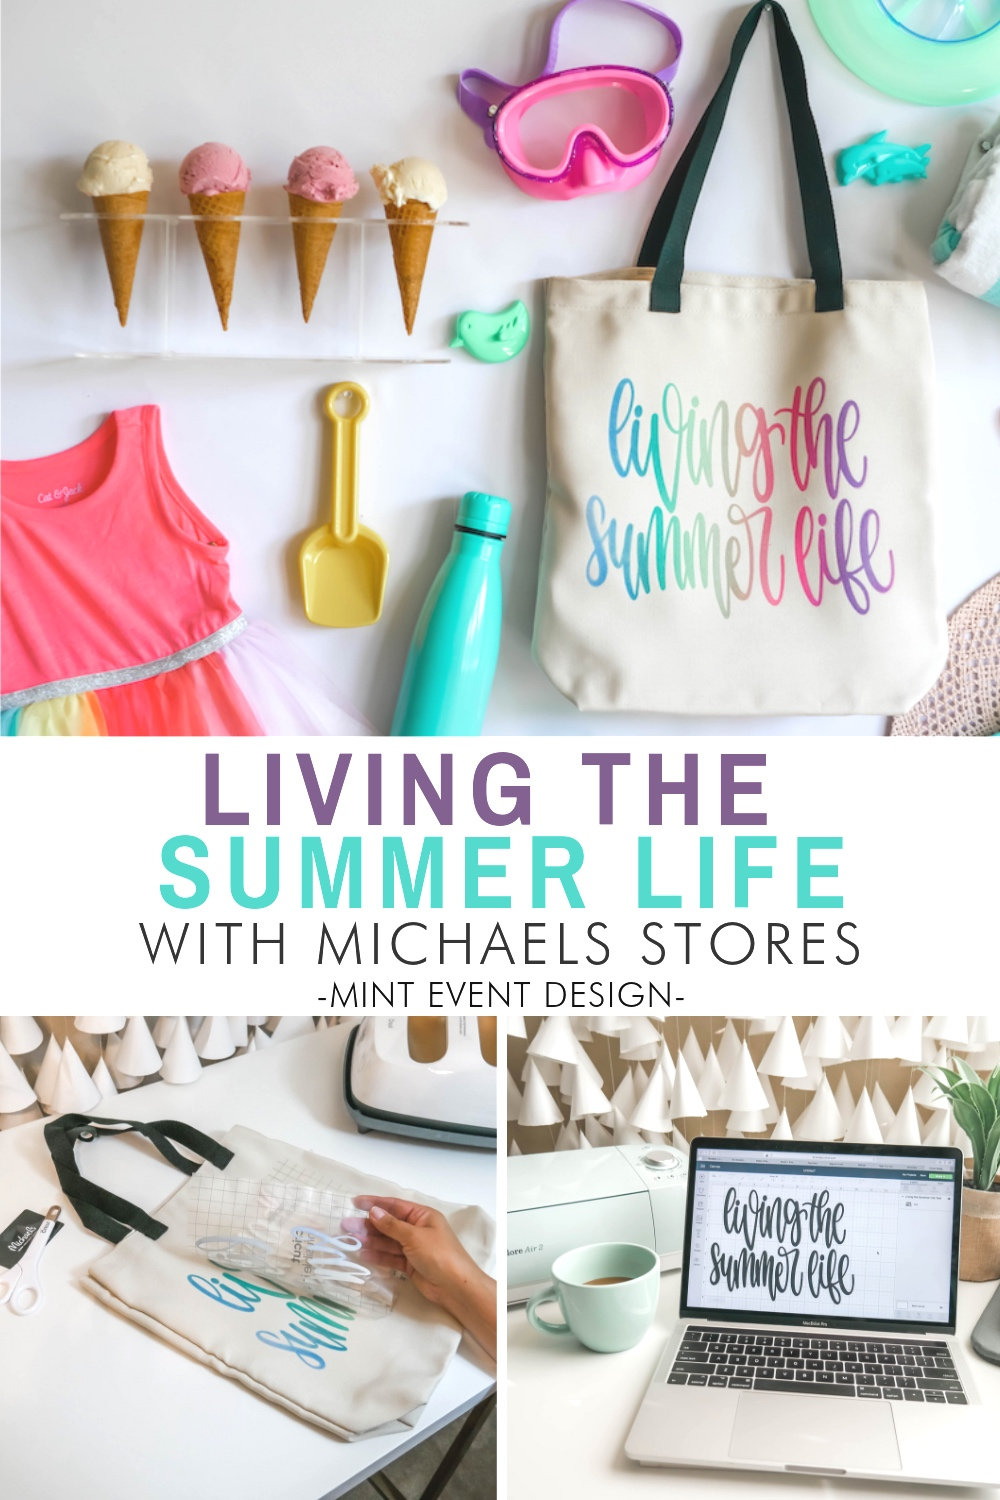 Living the Summer Life with Michaels Stores — Mint Event Design